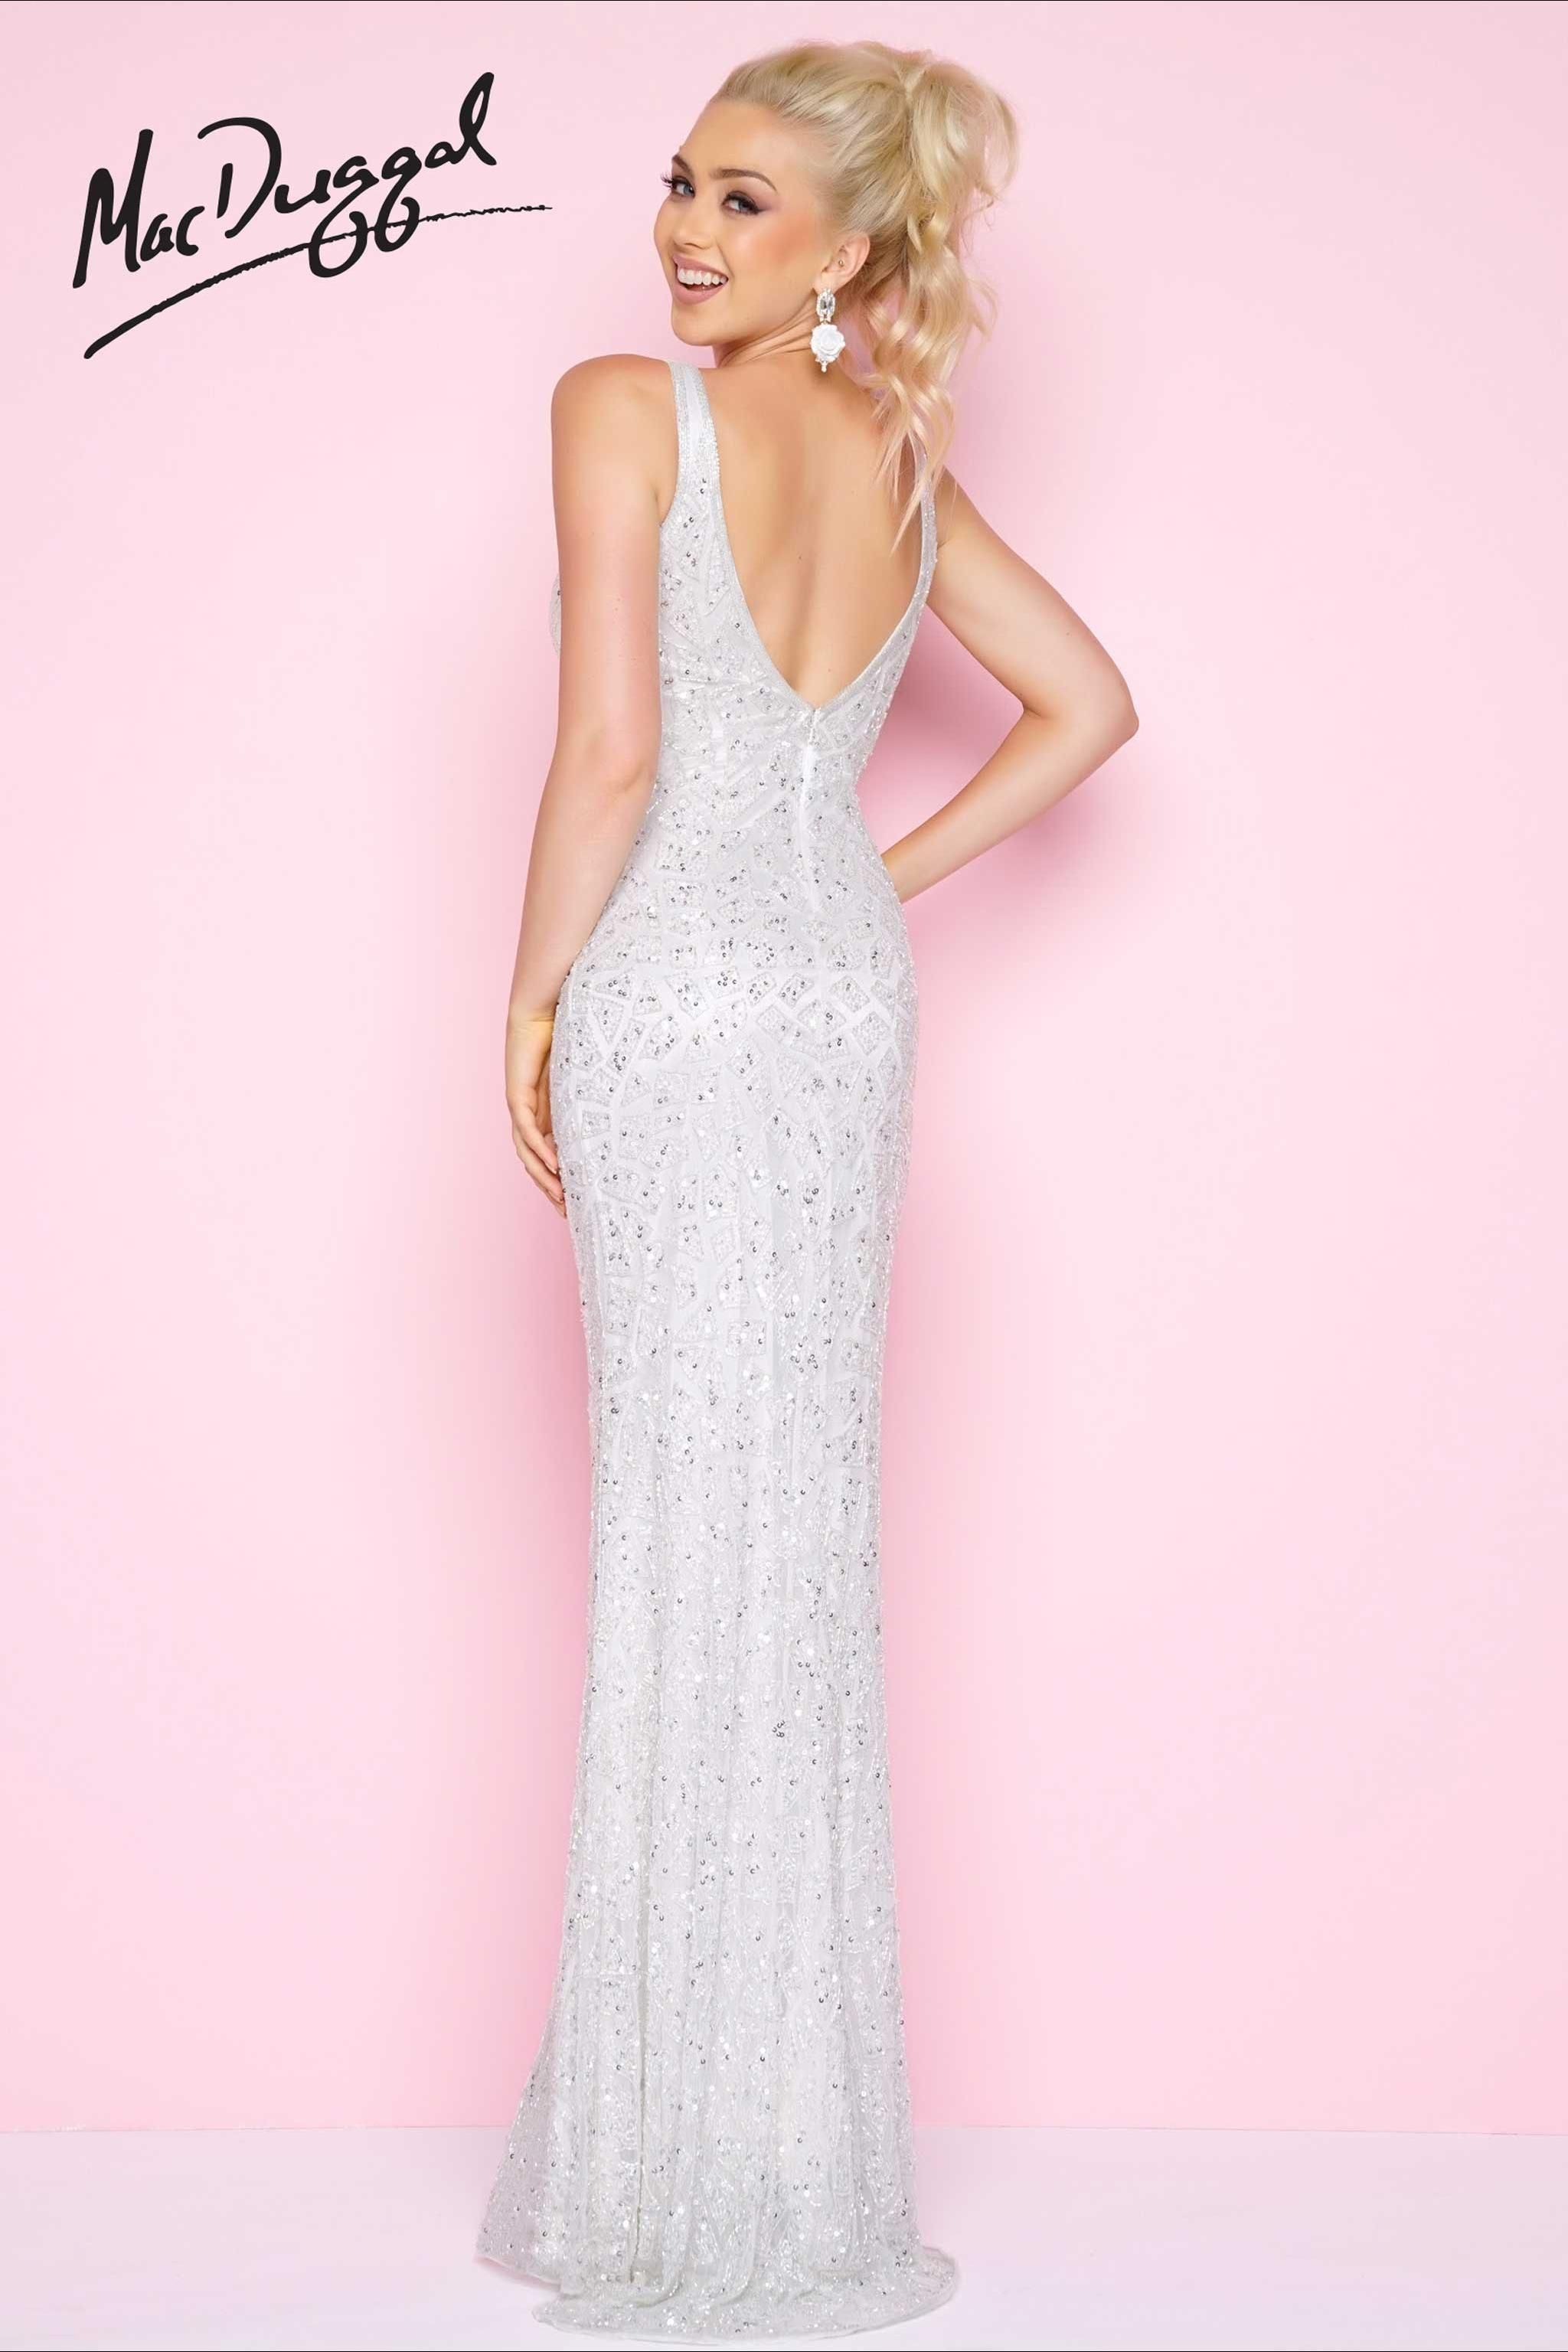 White Sequined Prom Dress | Occasion dresses | Pinterest | Prom ...